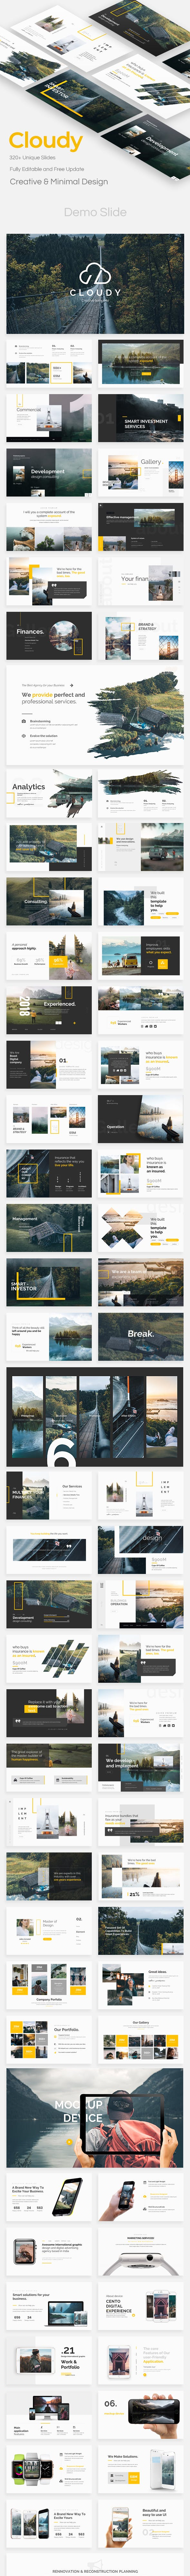 cloudy premium powerpoint template by bypaintdesign graphicriver